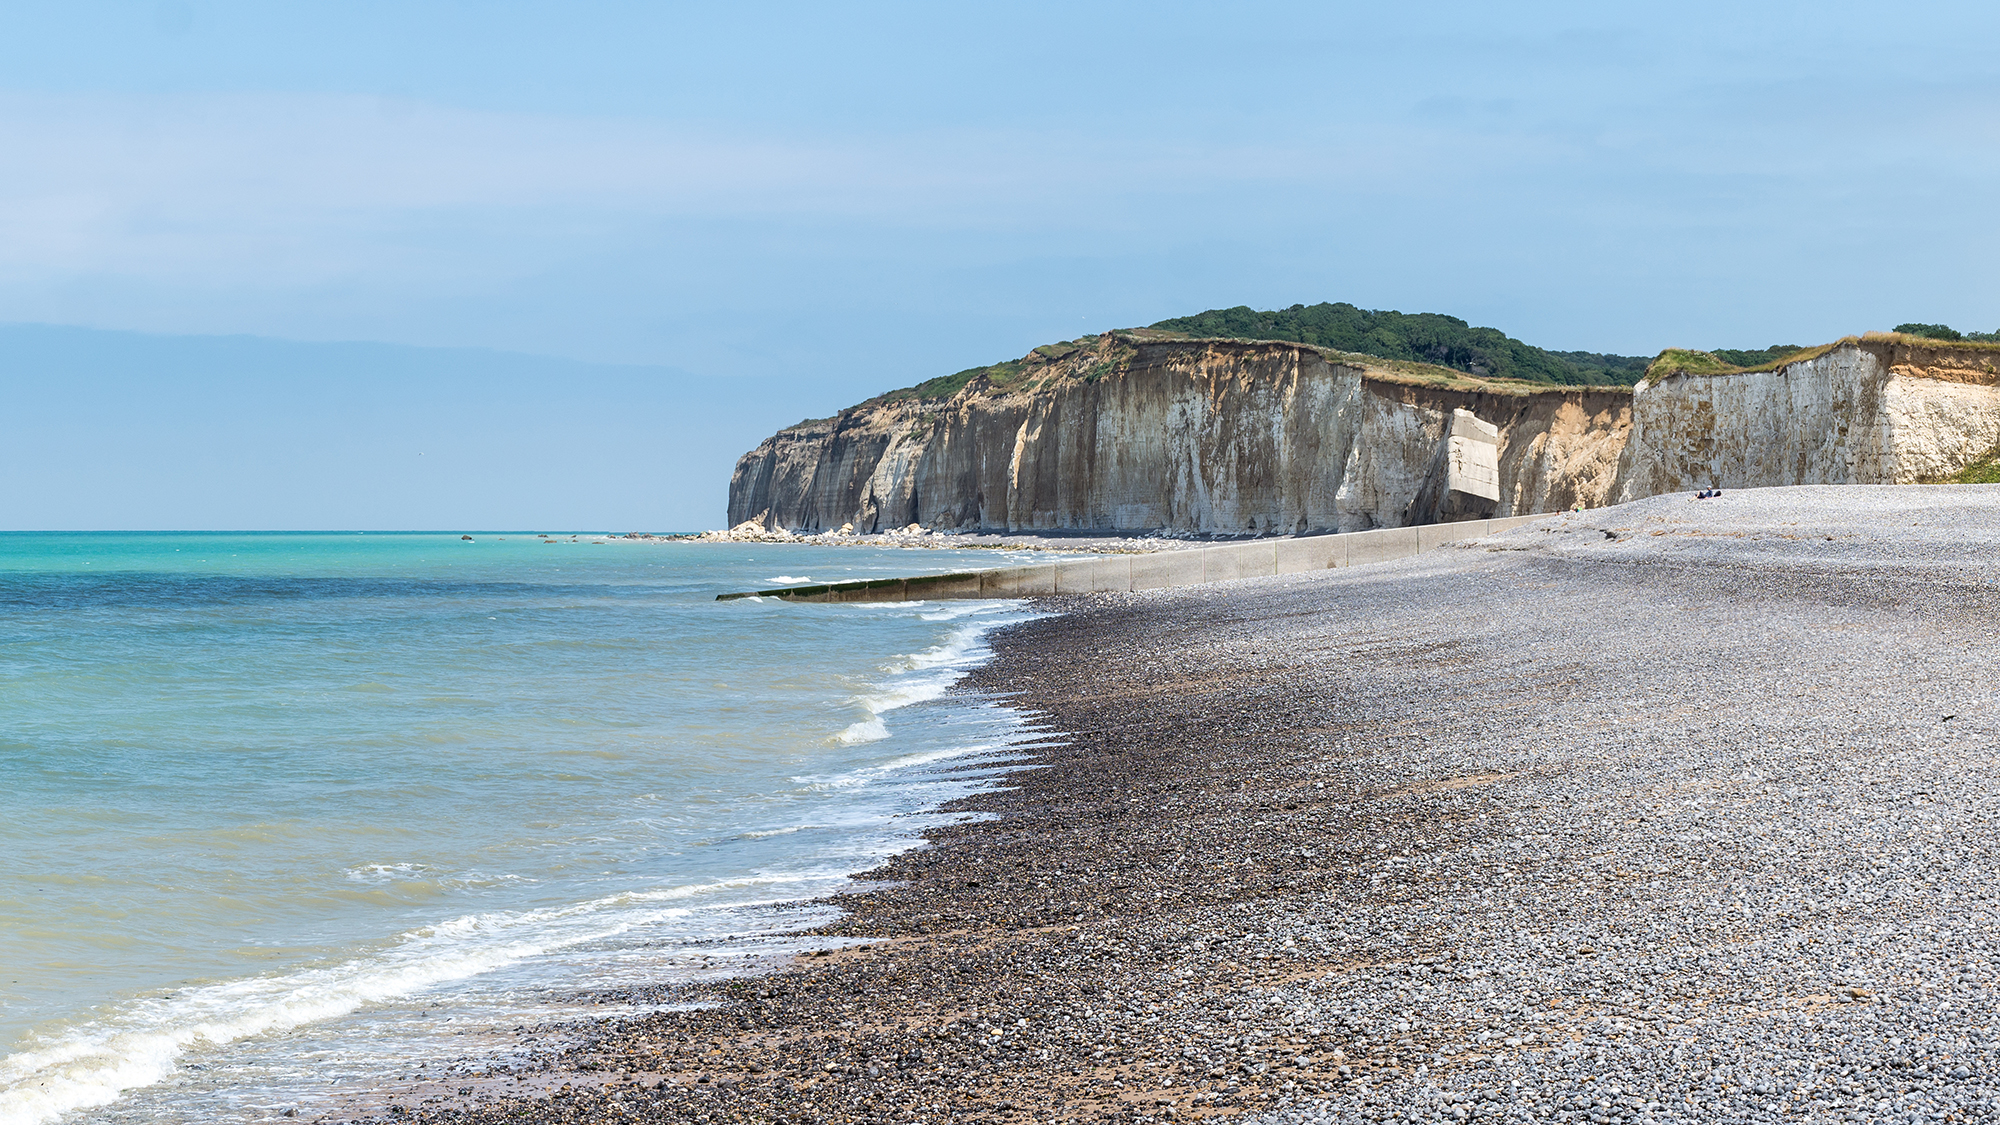 Normandy pebbled beach with clear blue waves washing onto the shore with green cliff tops in the background